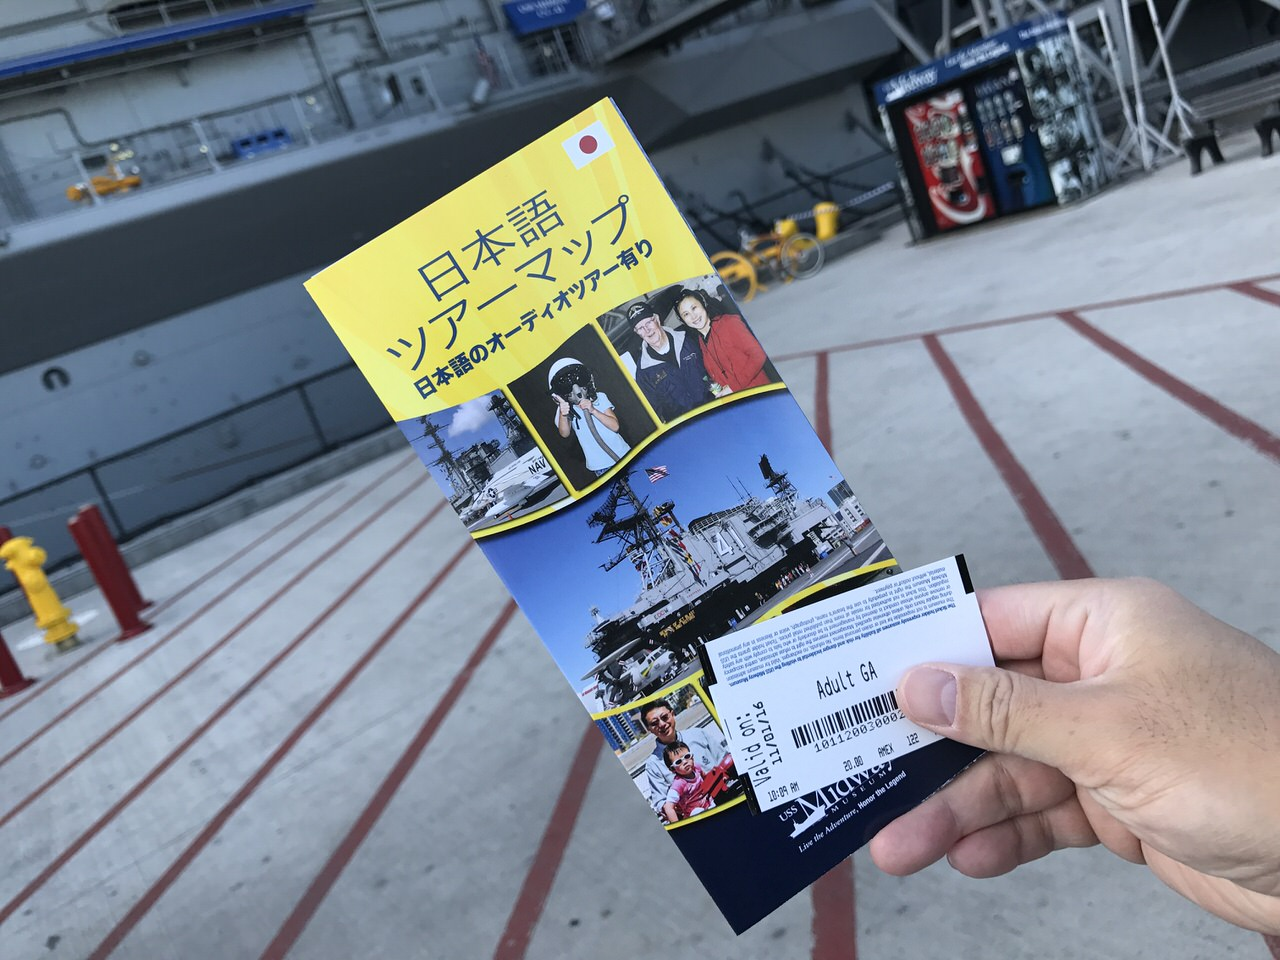 Uss midway museum 0556